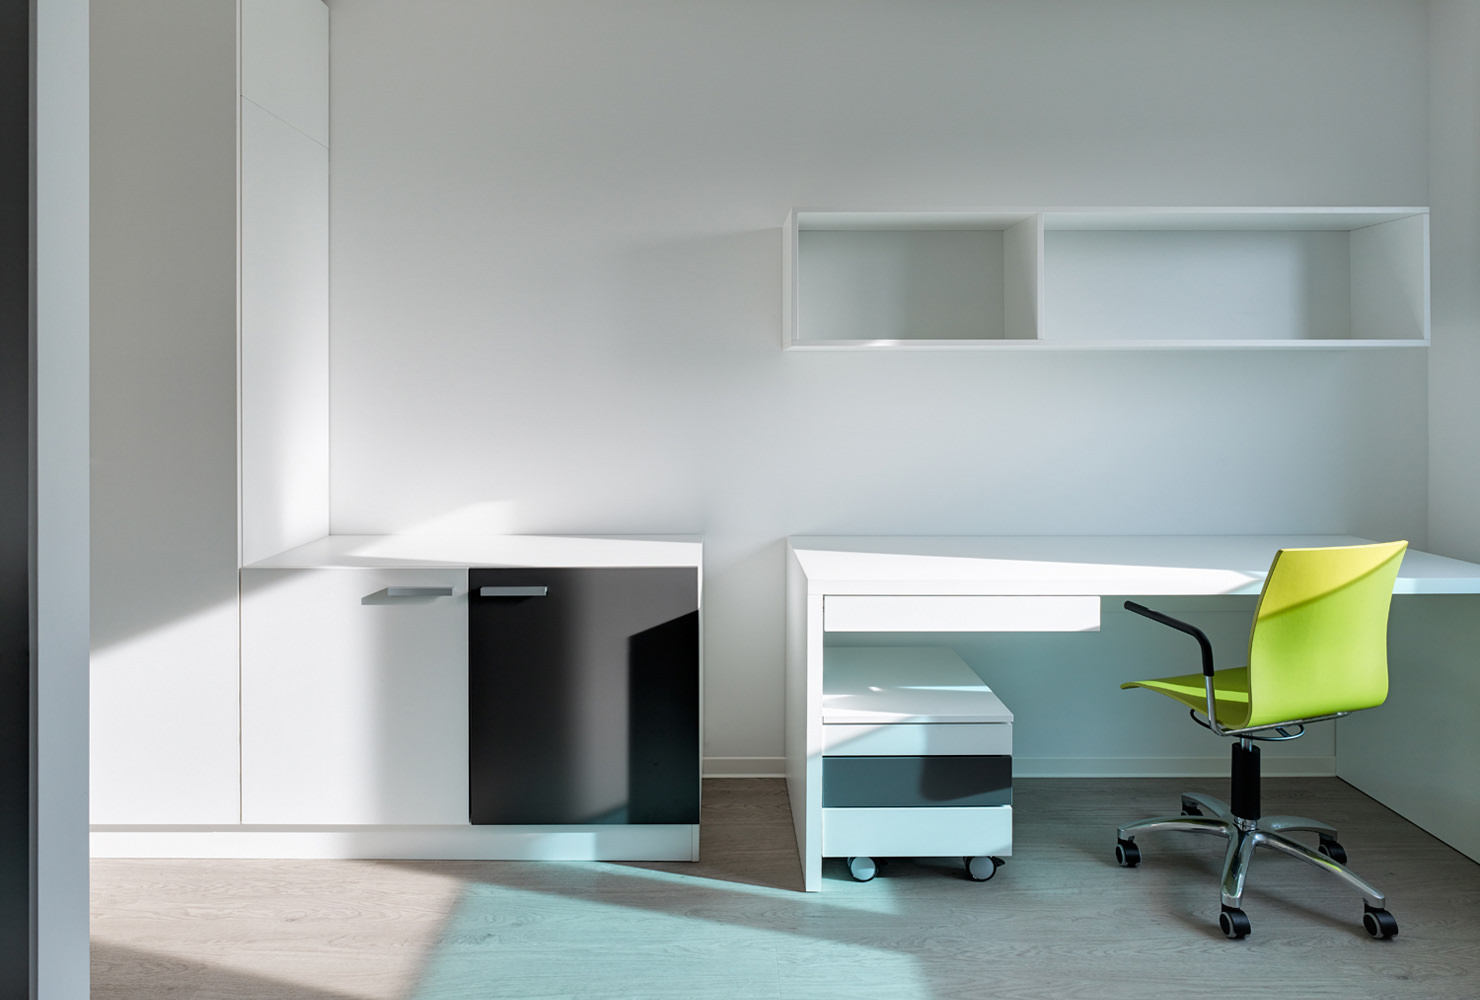 campus viva munich cba clemens bachmann architects munich. Black Bedroom Furniture Sets. Home Design Ideas